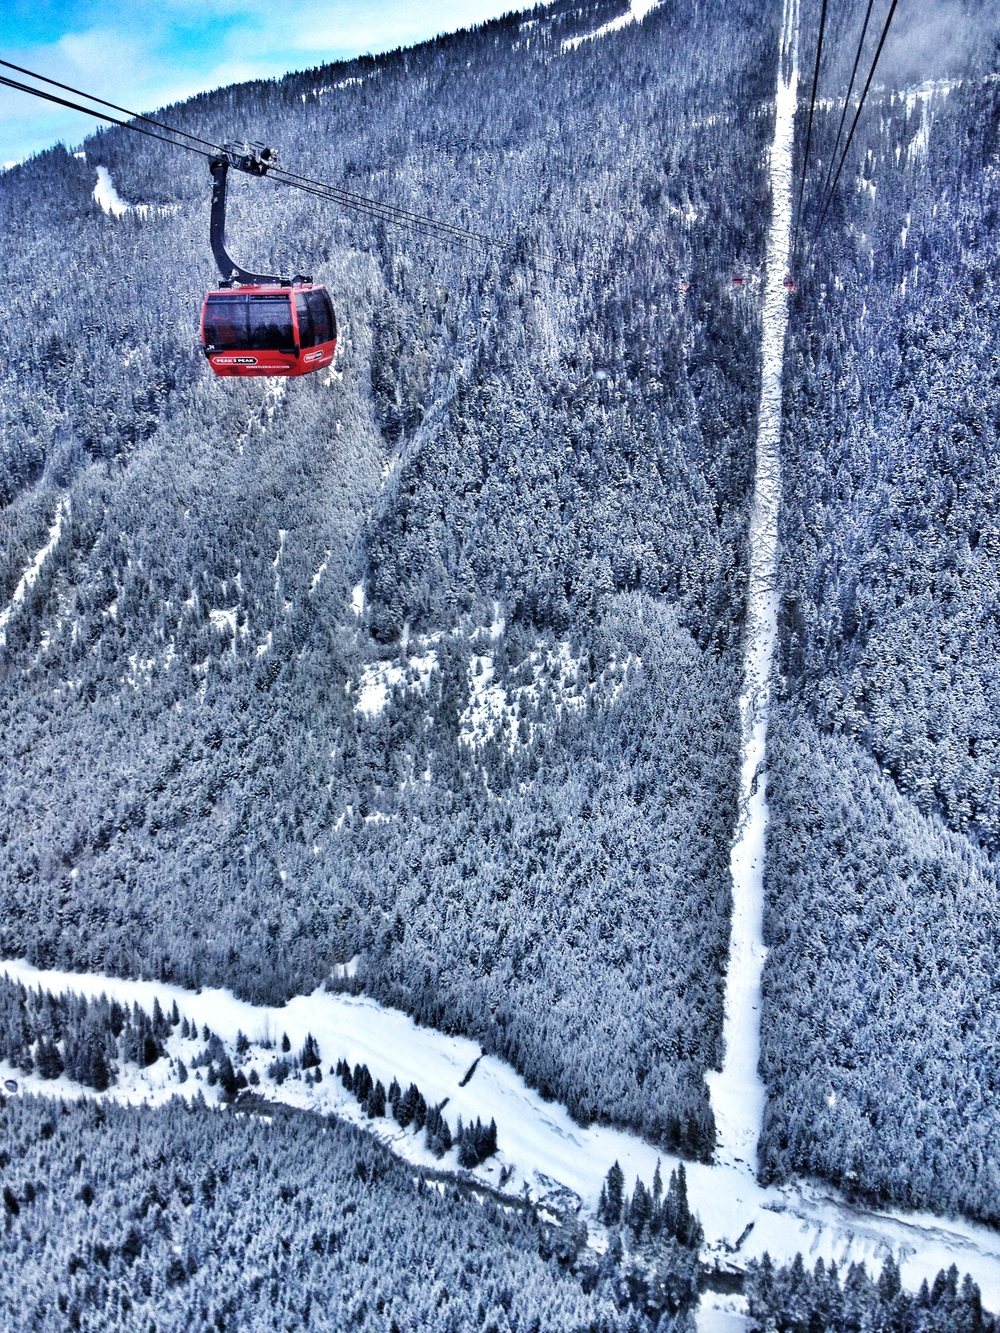 Taking a fun ride on the Peak 2 Peak Gondola